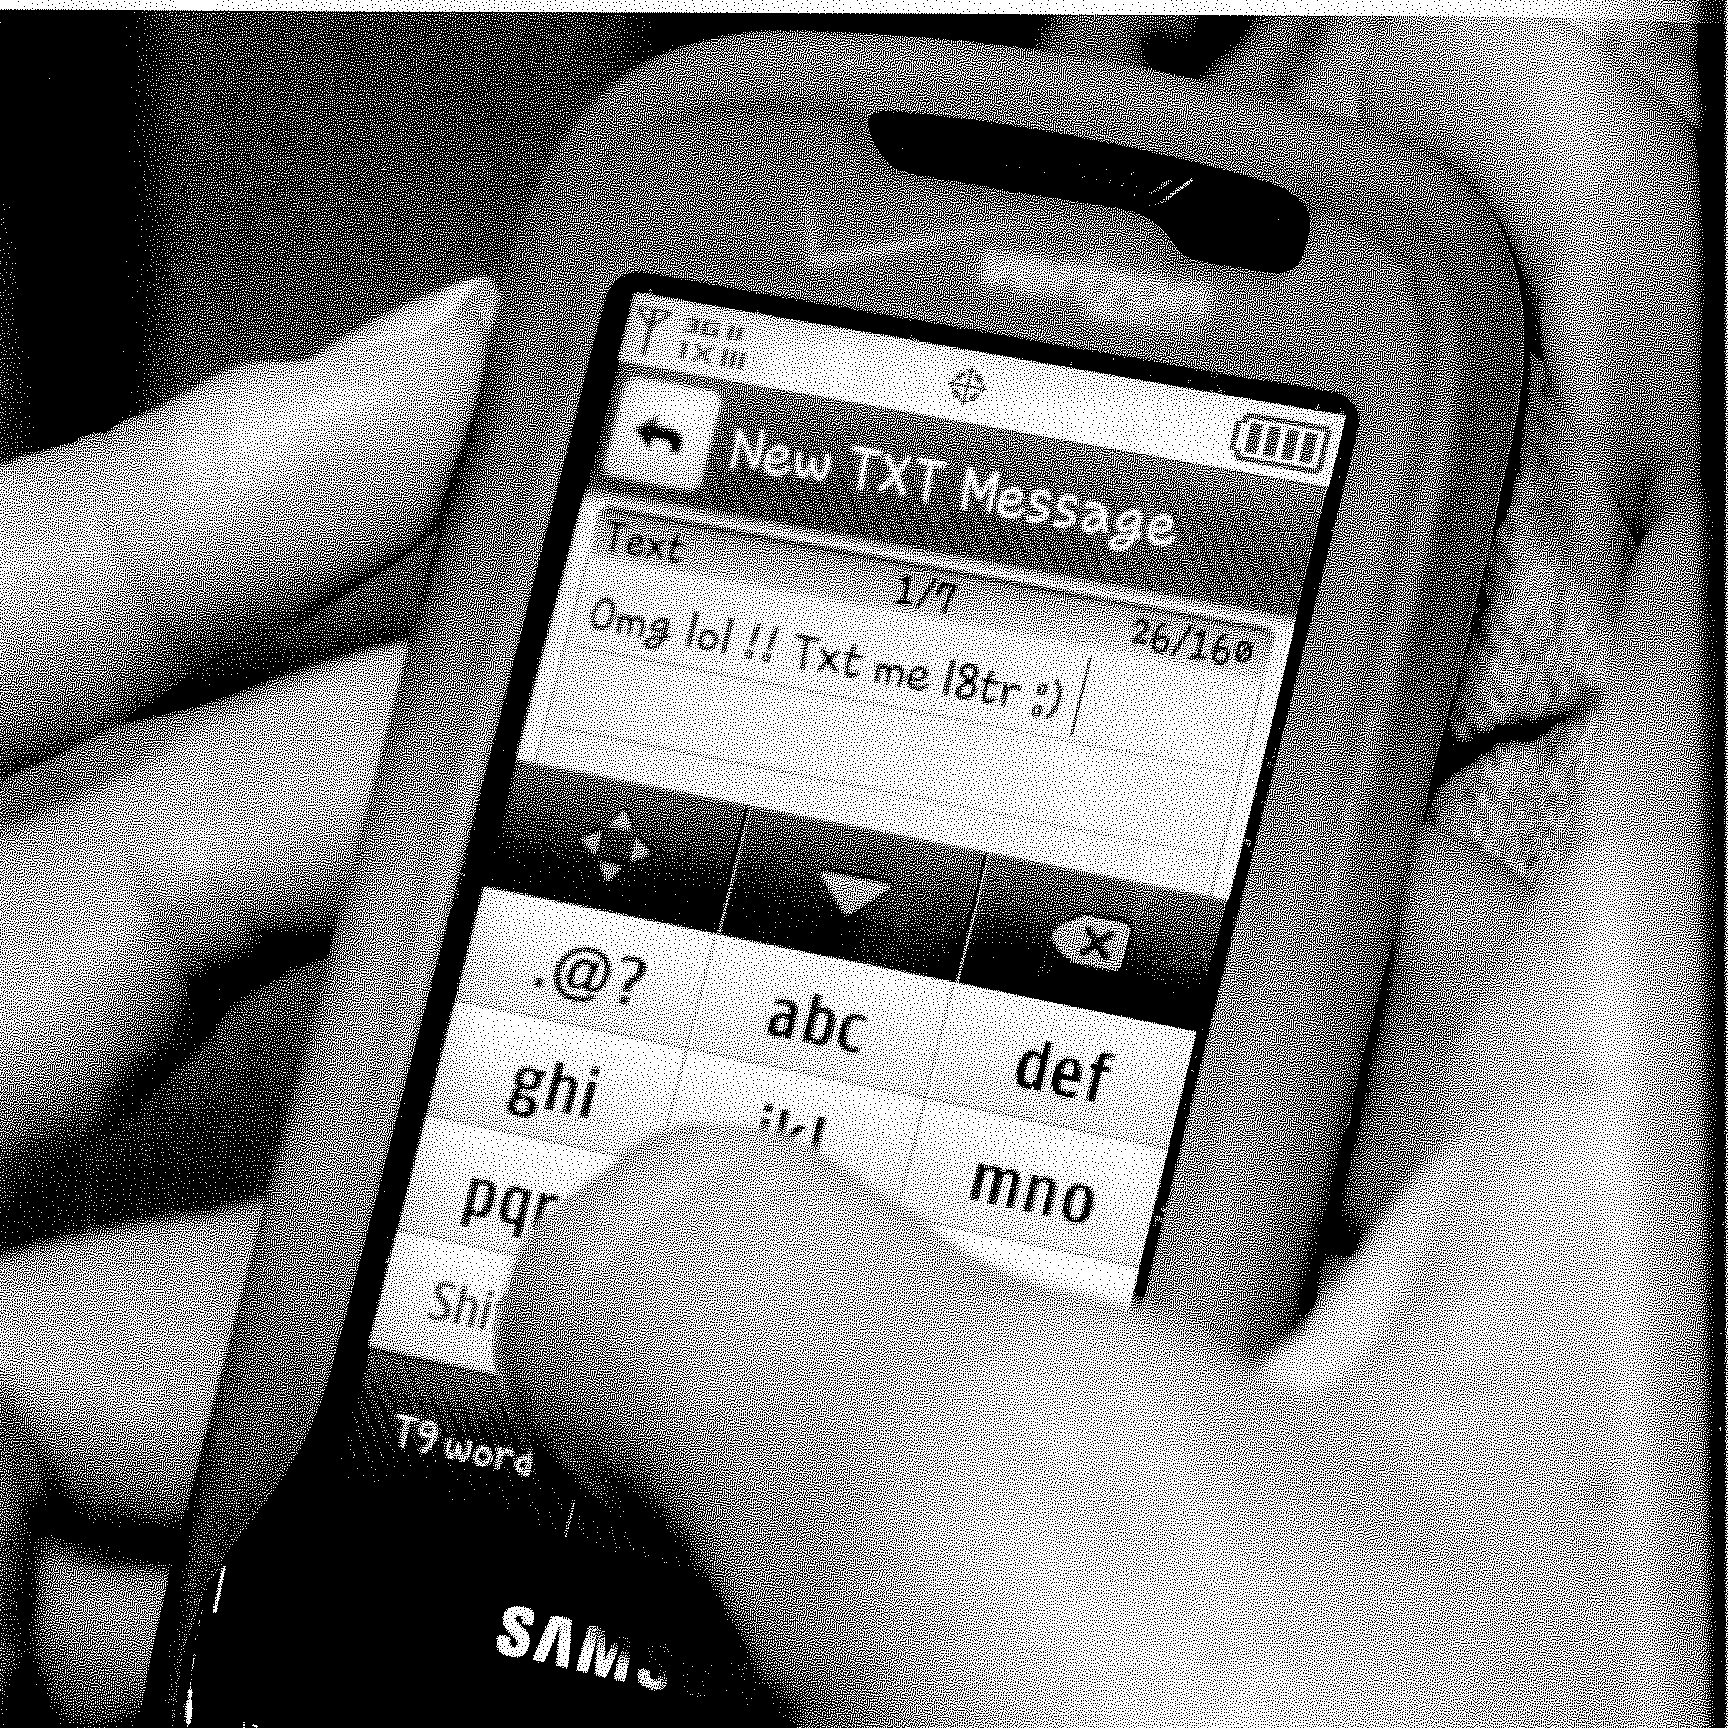 black and white image of a mid-2000s cell phone